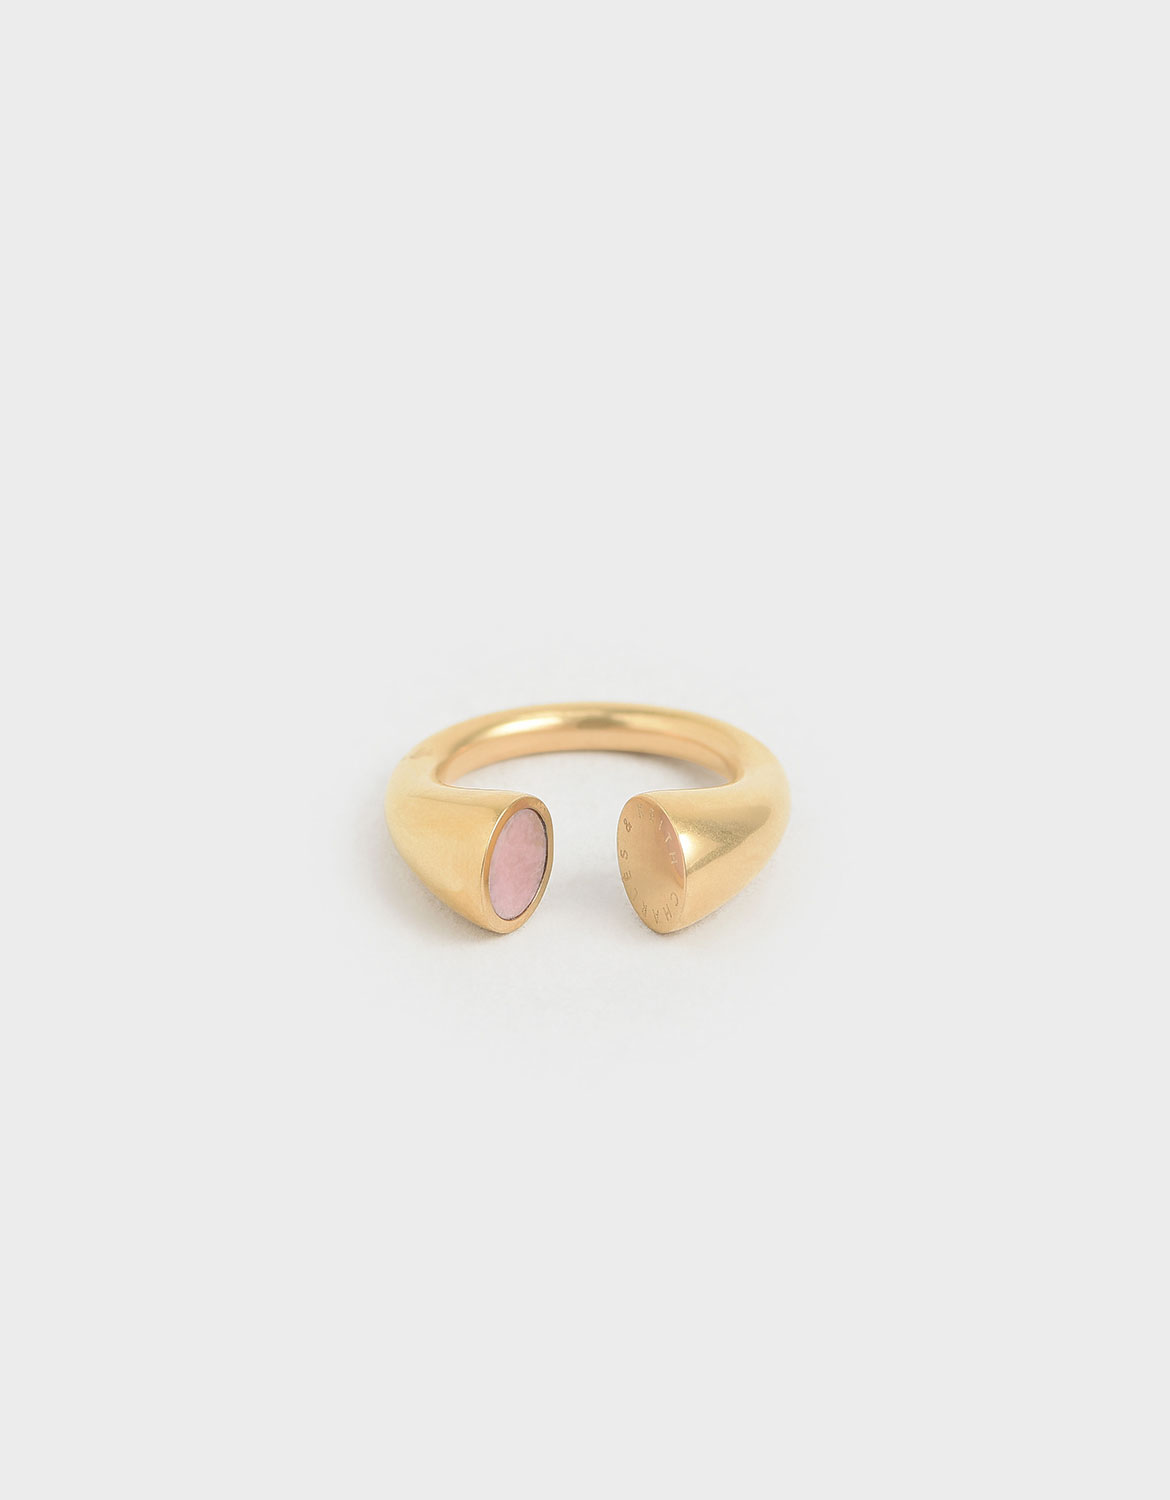 Women's gold Rose Quartz open ring